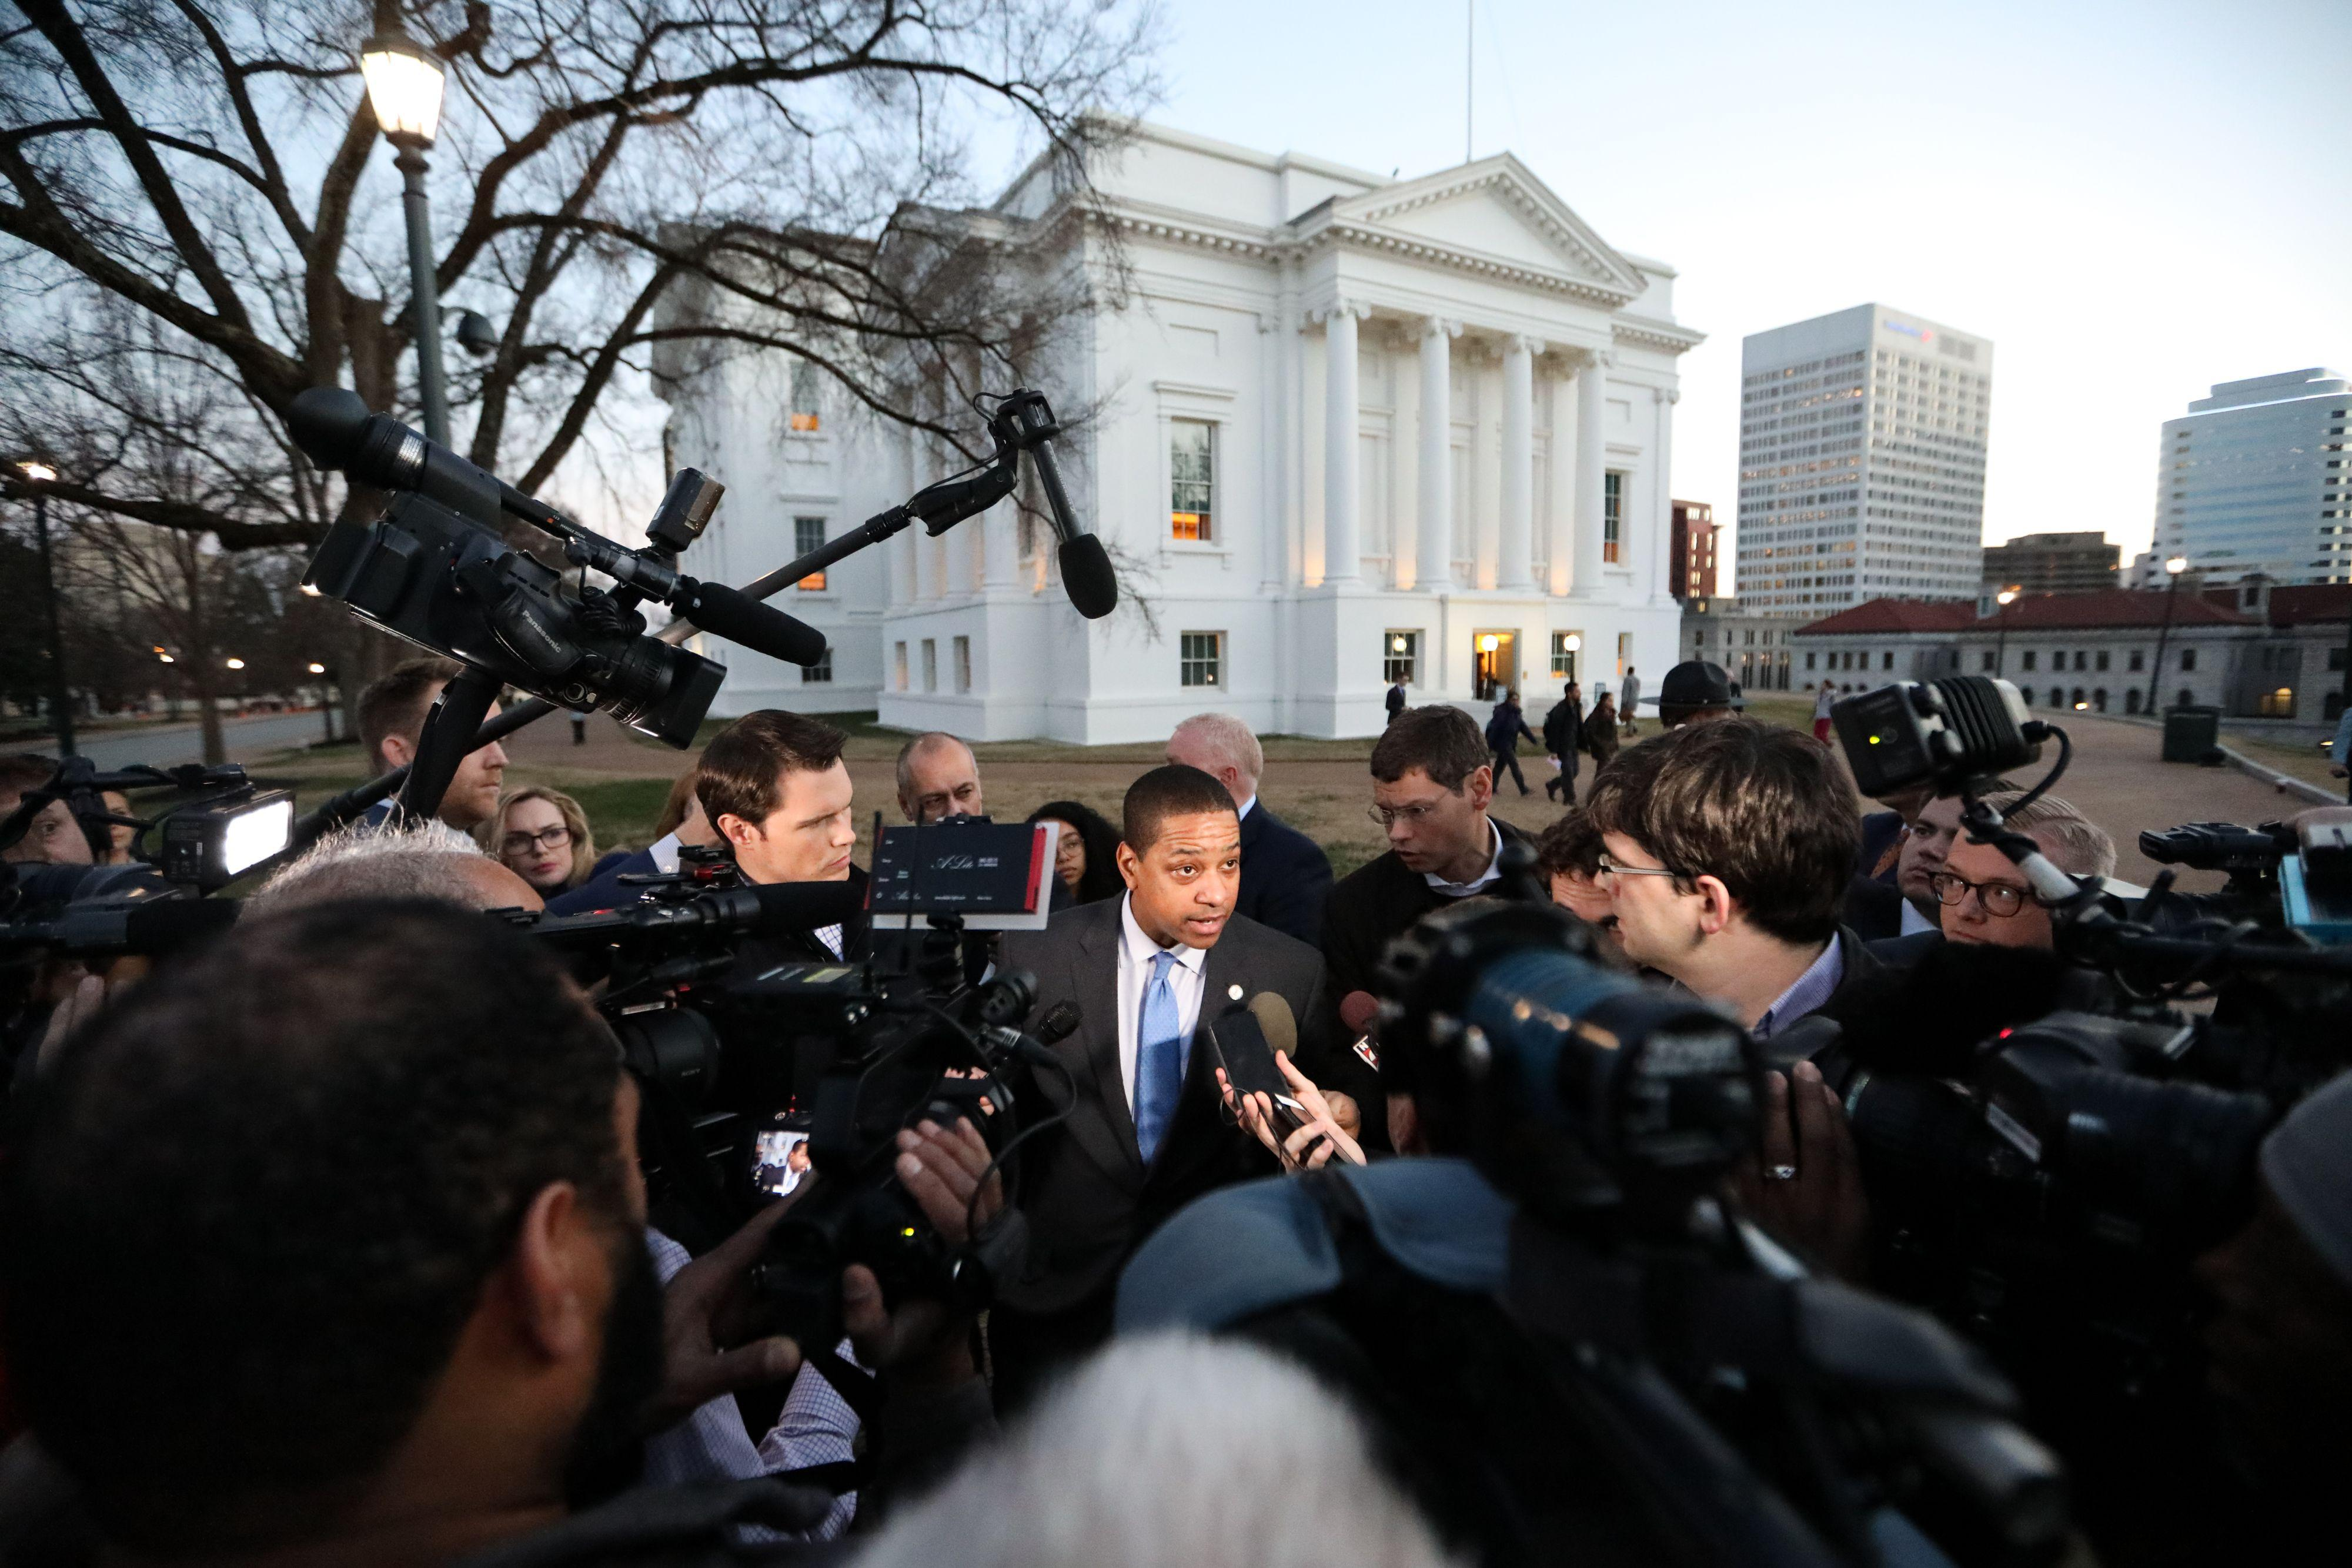 Virginia Lieutenant Governor Justin Fairfax stands in the middle of a scrum of reporters with cameras and mics outside the Virginia capital building.